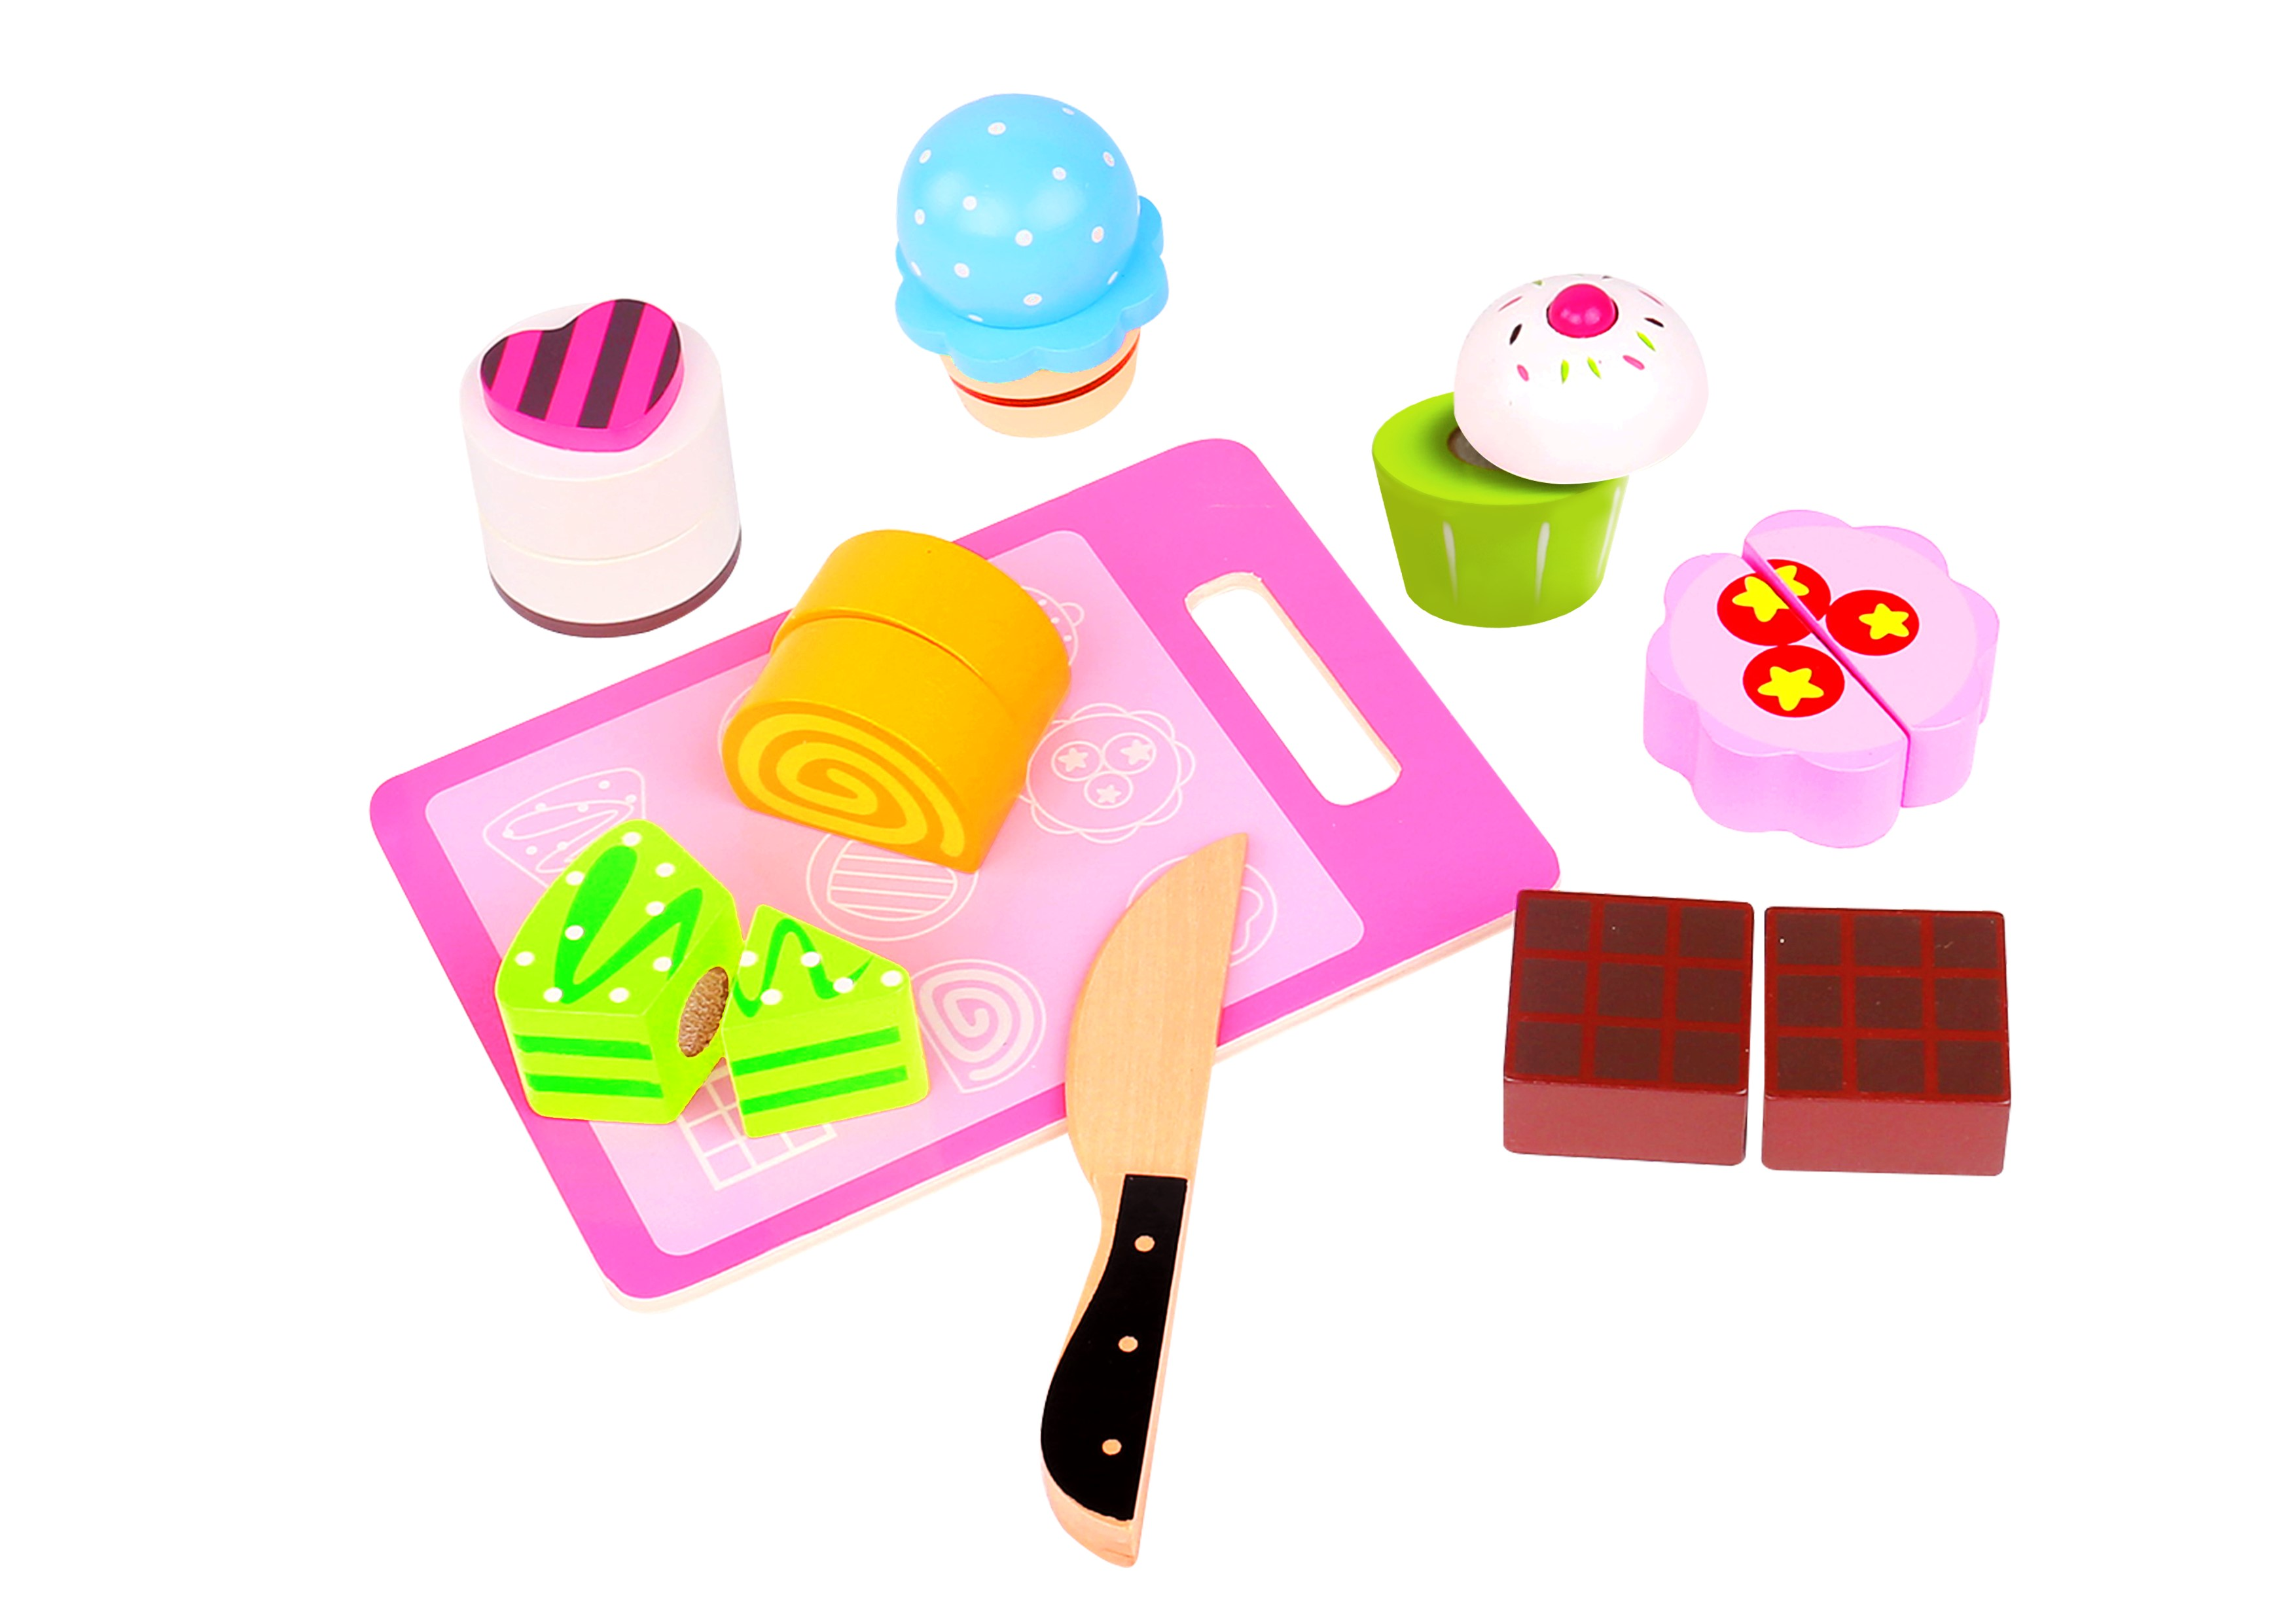 Wondrous Toysters Wooden Dessert Cutting Play Food Set Wood Toys For Kids Premium Quality Pretend Children Kitchen Cooking Playset Learning Resources Home Interior And Landscaping Ymoonbapapsignezvosmurscom